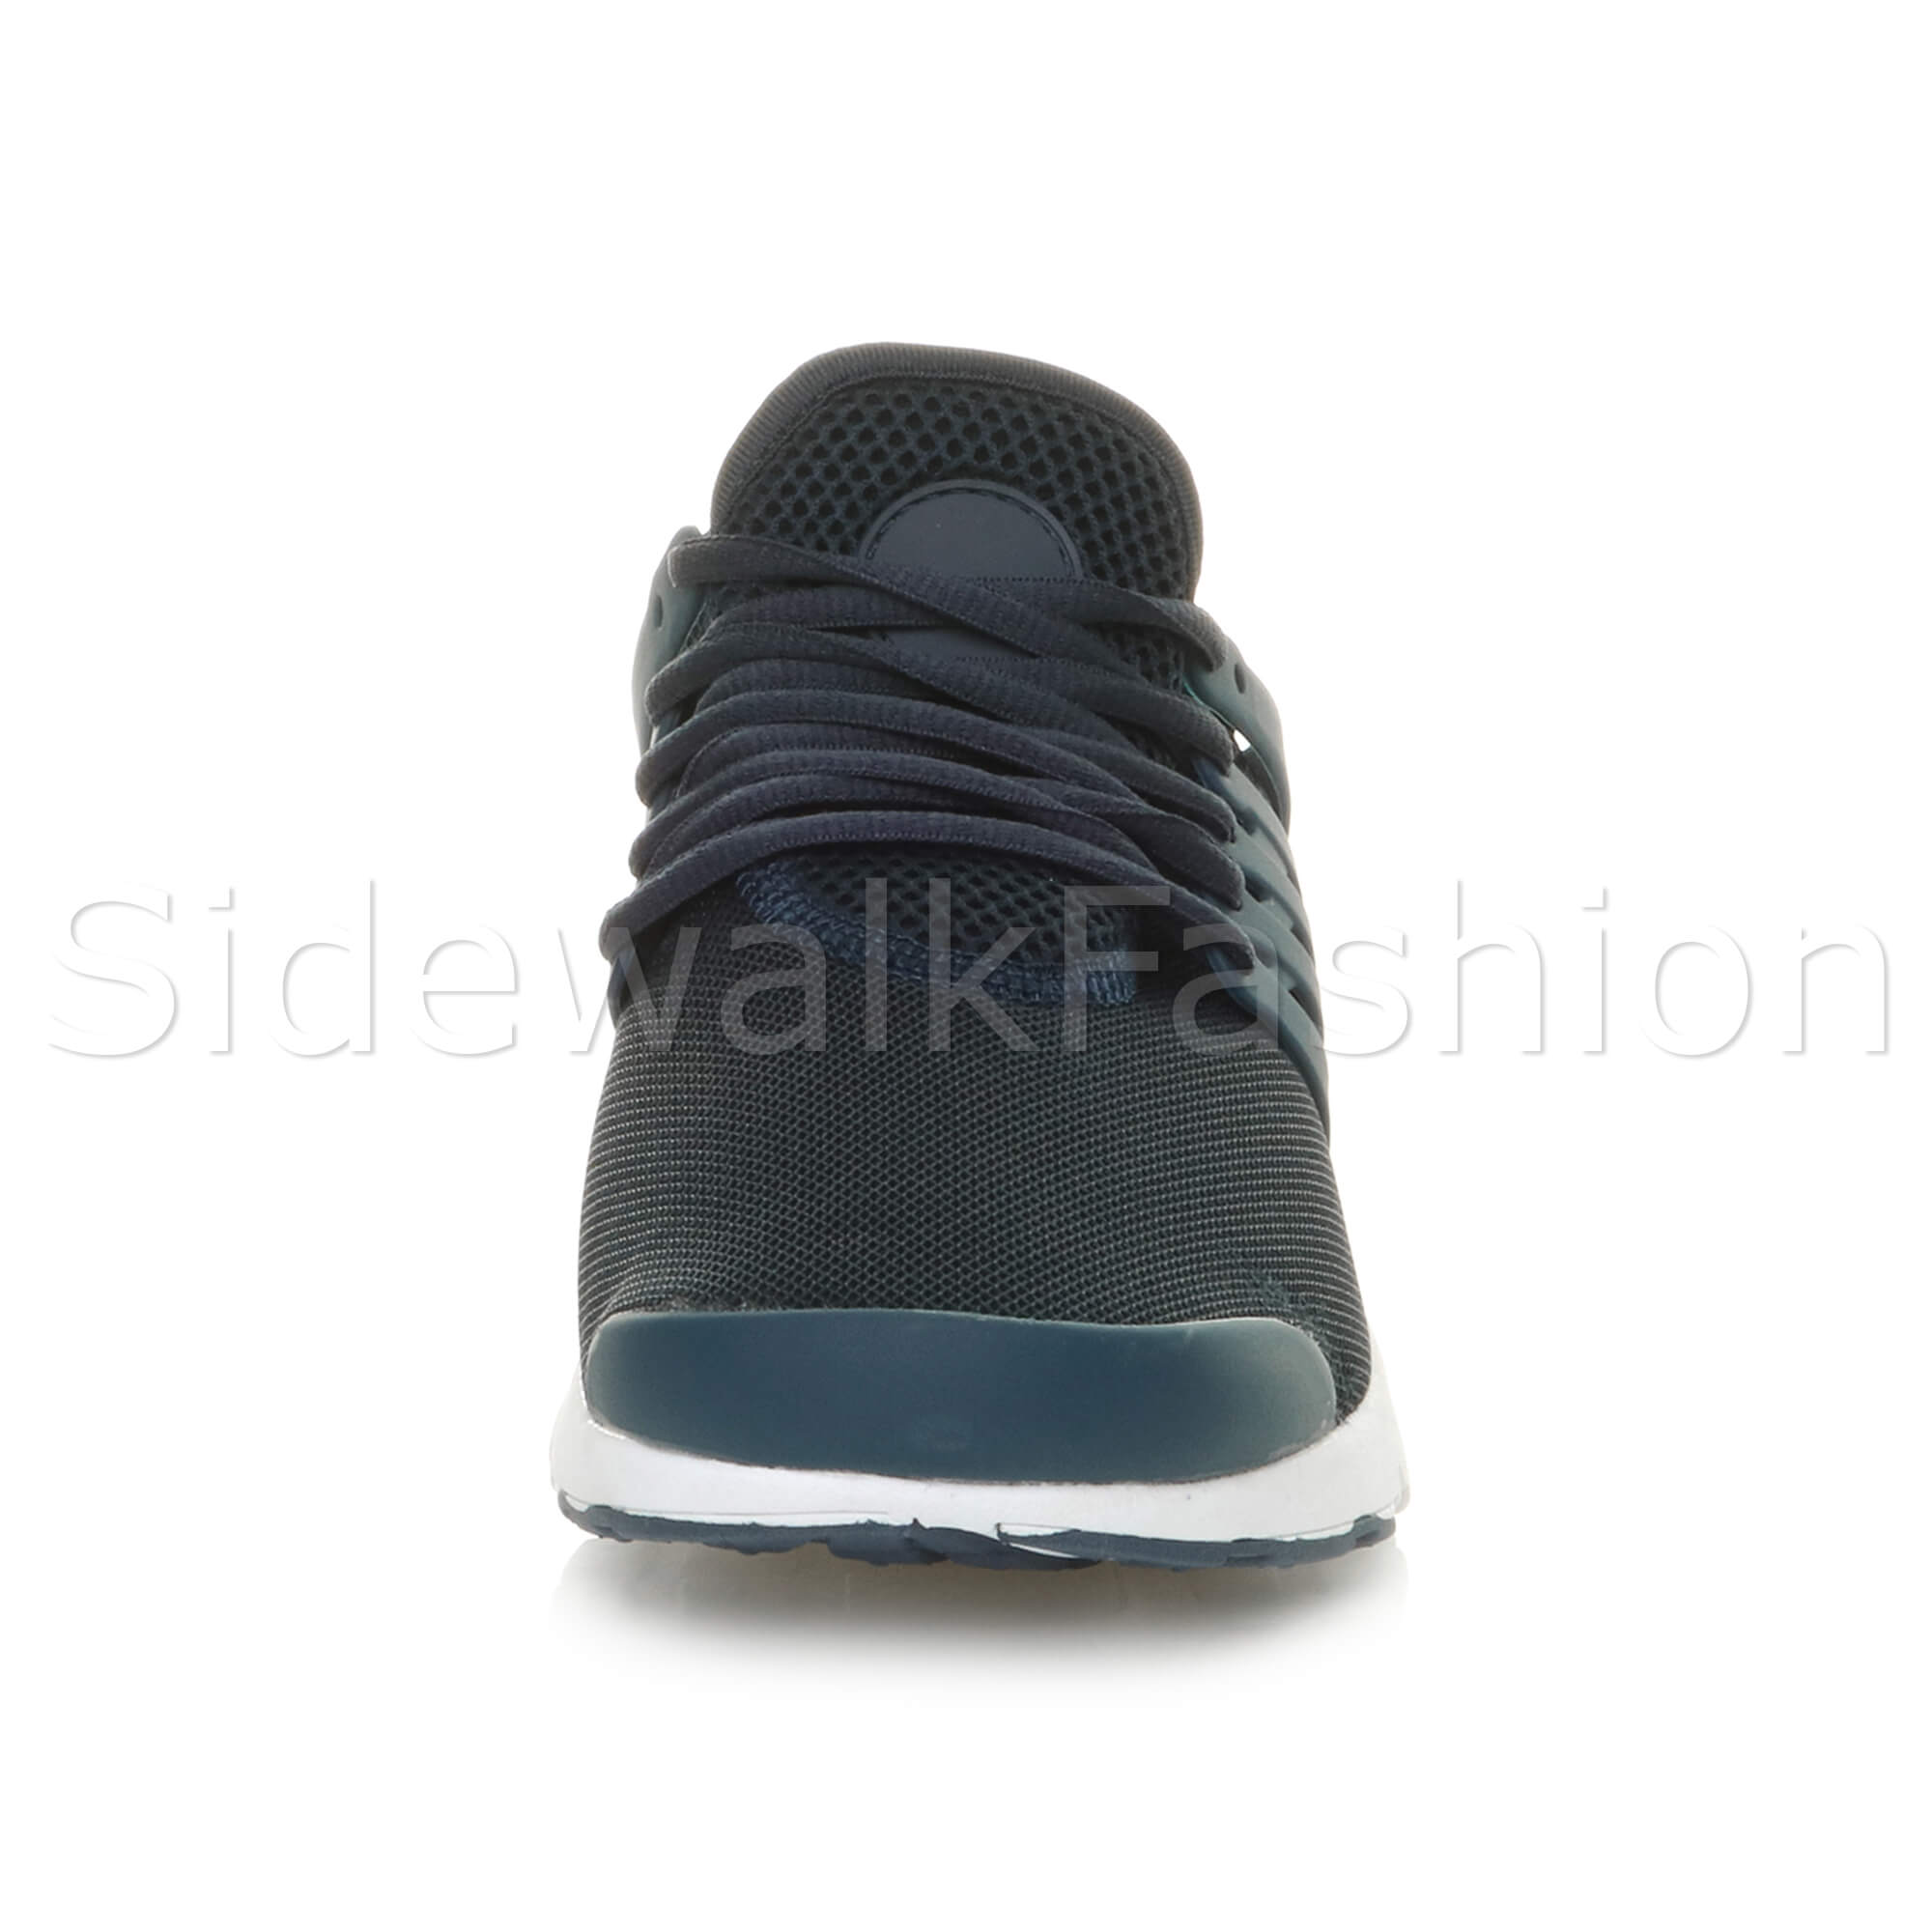 Mens-lace-up-sports-casual-low-top-gym-running-flexible-sneakers-trainers-size miniatuur 23